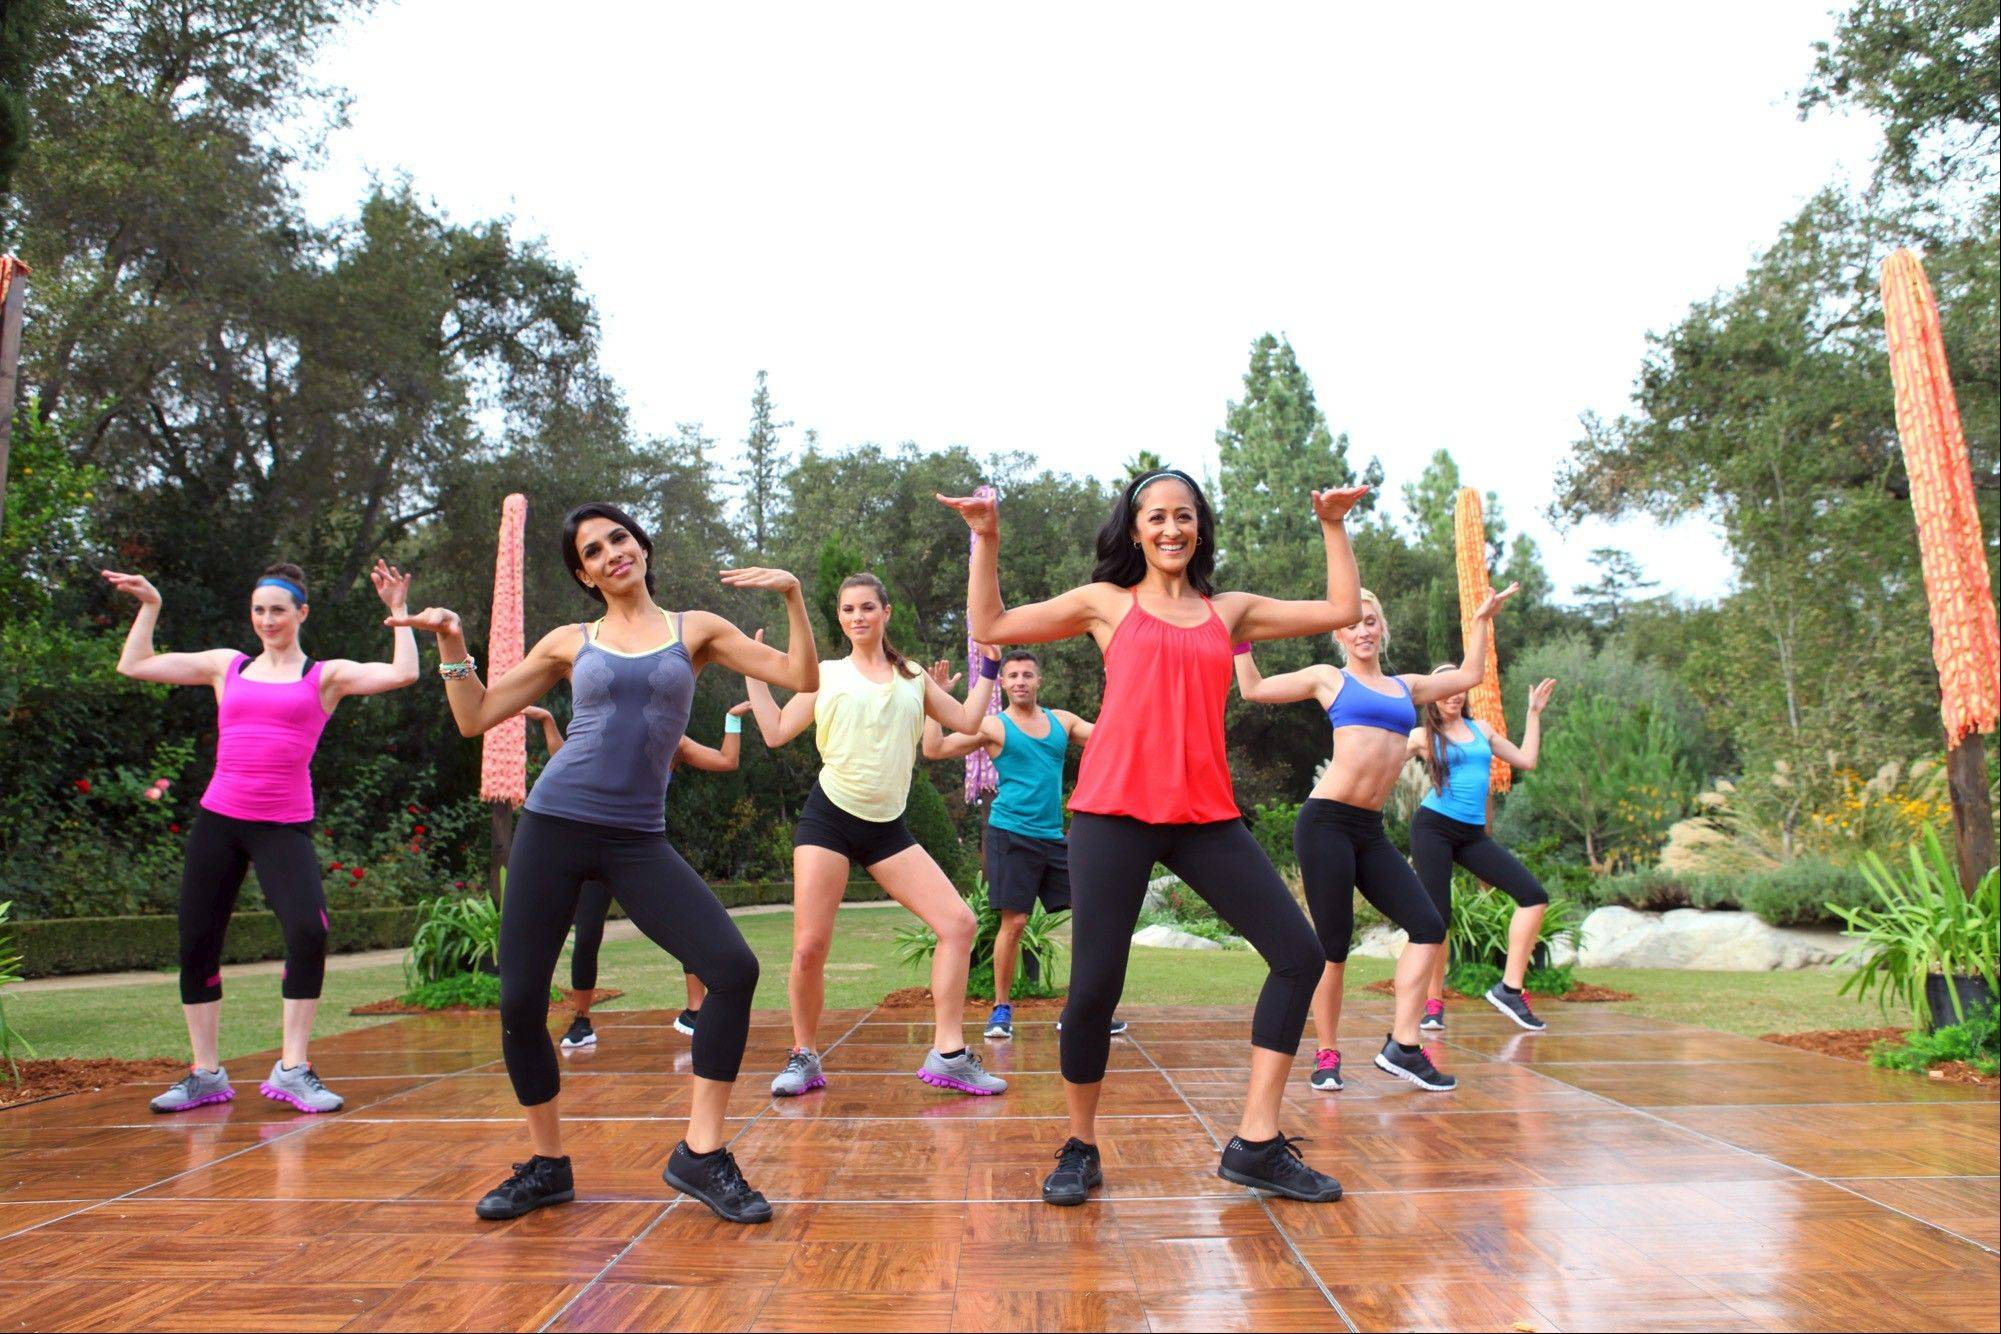 Co-founders Kajal Desai (in the red shirt) and Priya Pandya (in the gray shirt) lead a class on one of their new DVDs.